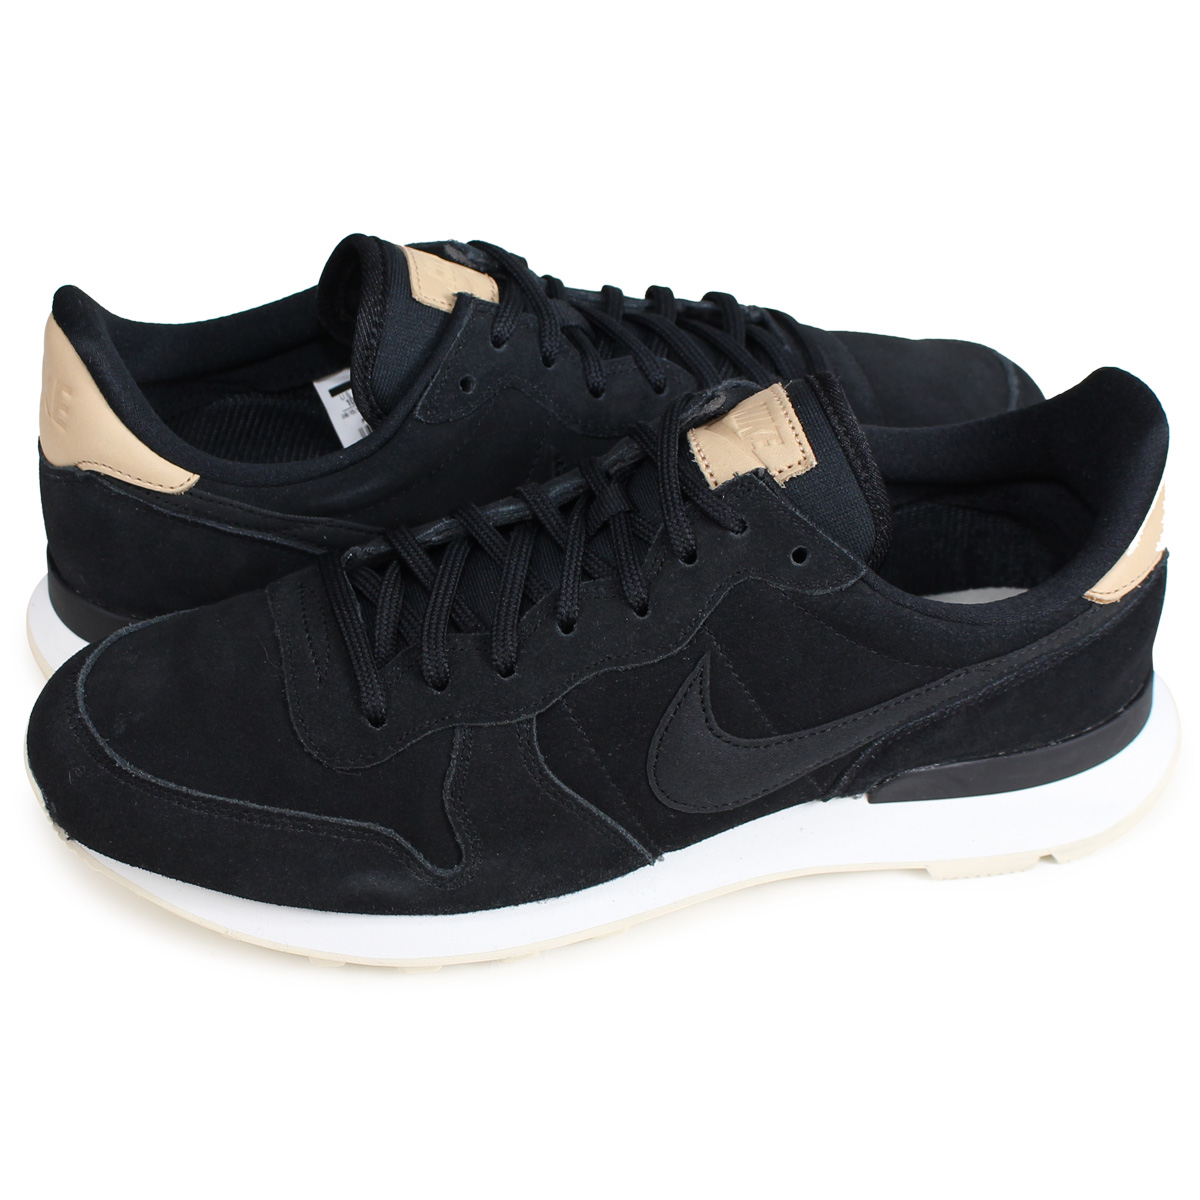 huge selection of fe6e4 7da76 Nike NIKE internationalist sneakers men WMNS INTERNATIONALIST PREMIUM black  828,404-017 load planned Shinnyu load in reservation product 215  containing ...